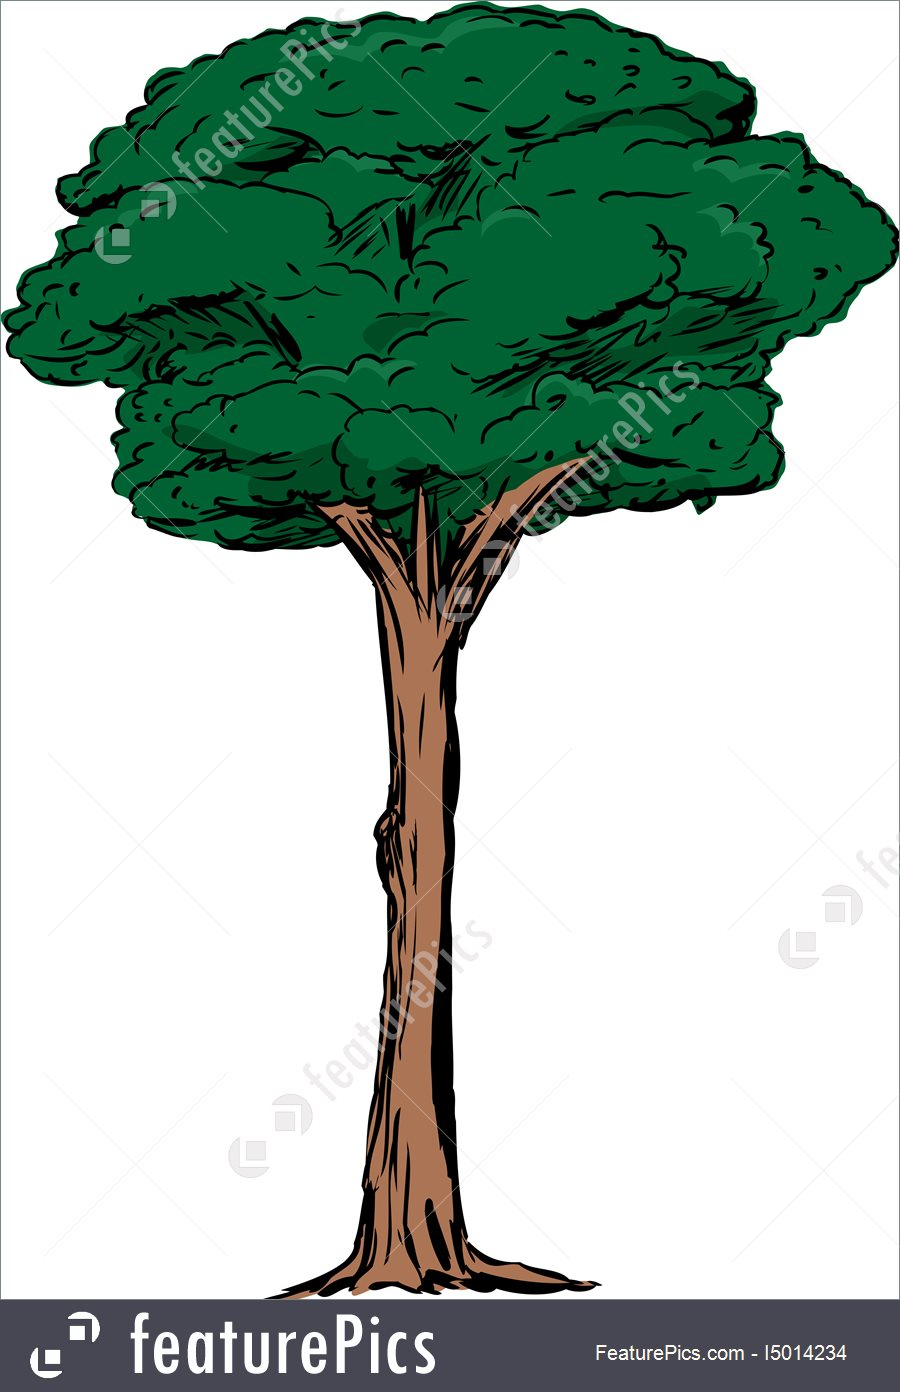 Tall Clipart | Free download best Tall Clipart on ...